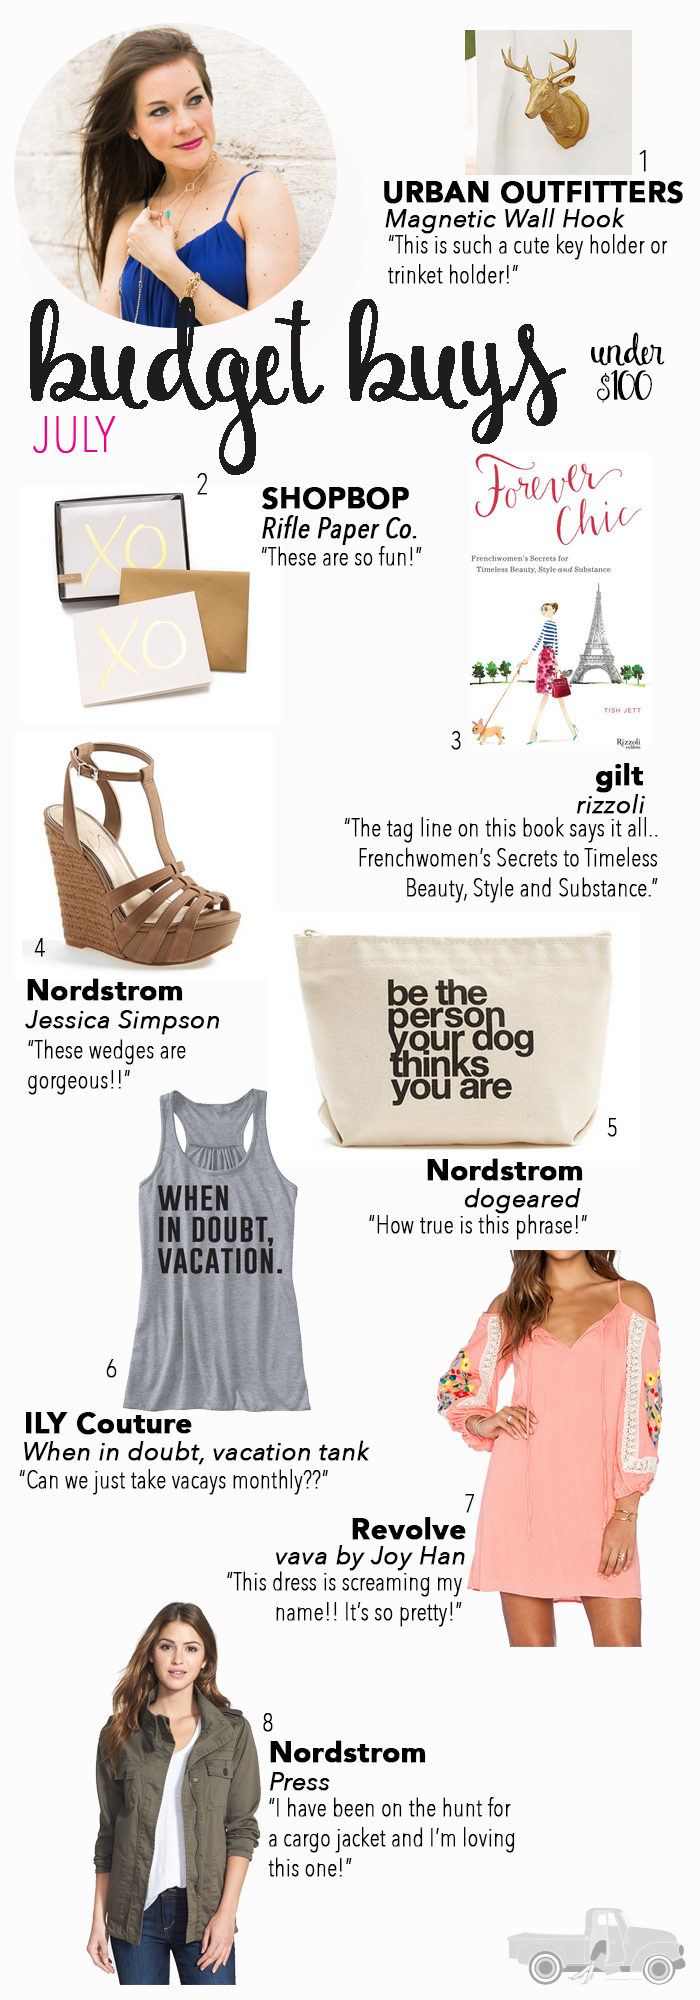 Looking to go shopping? You've got to check out my July Budget Buys! Everything is under $100...lots of fun things from Nordstrom and more!!